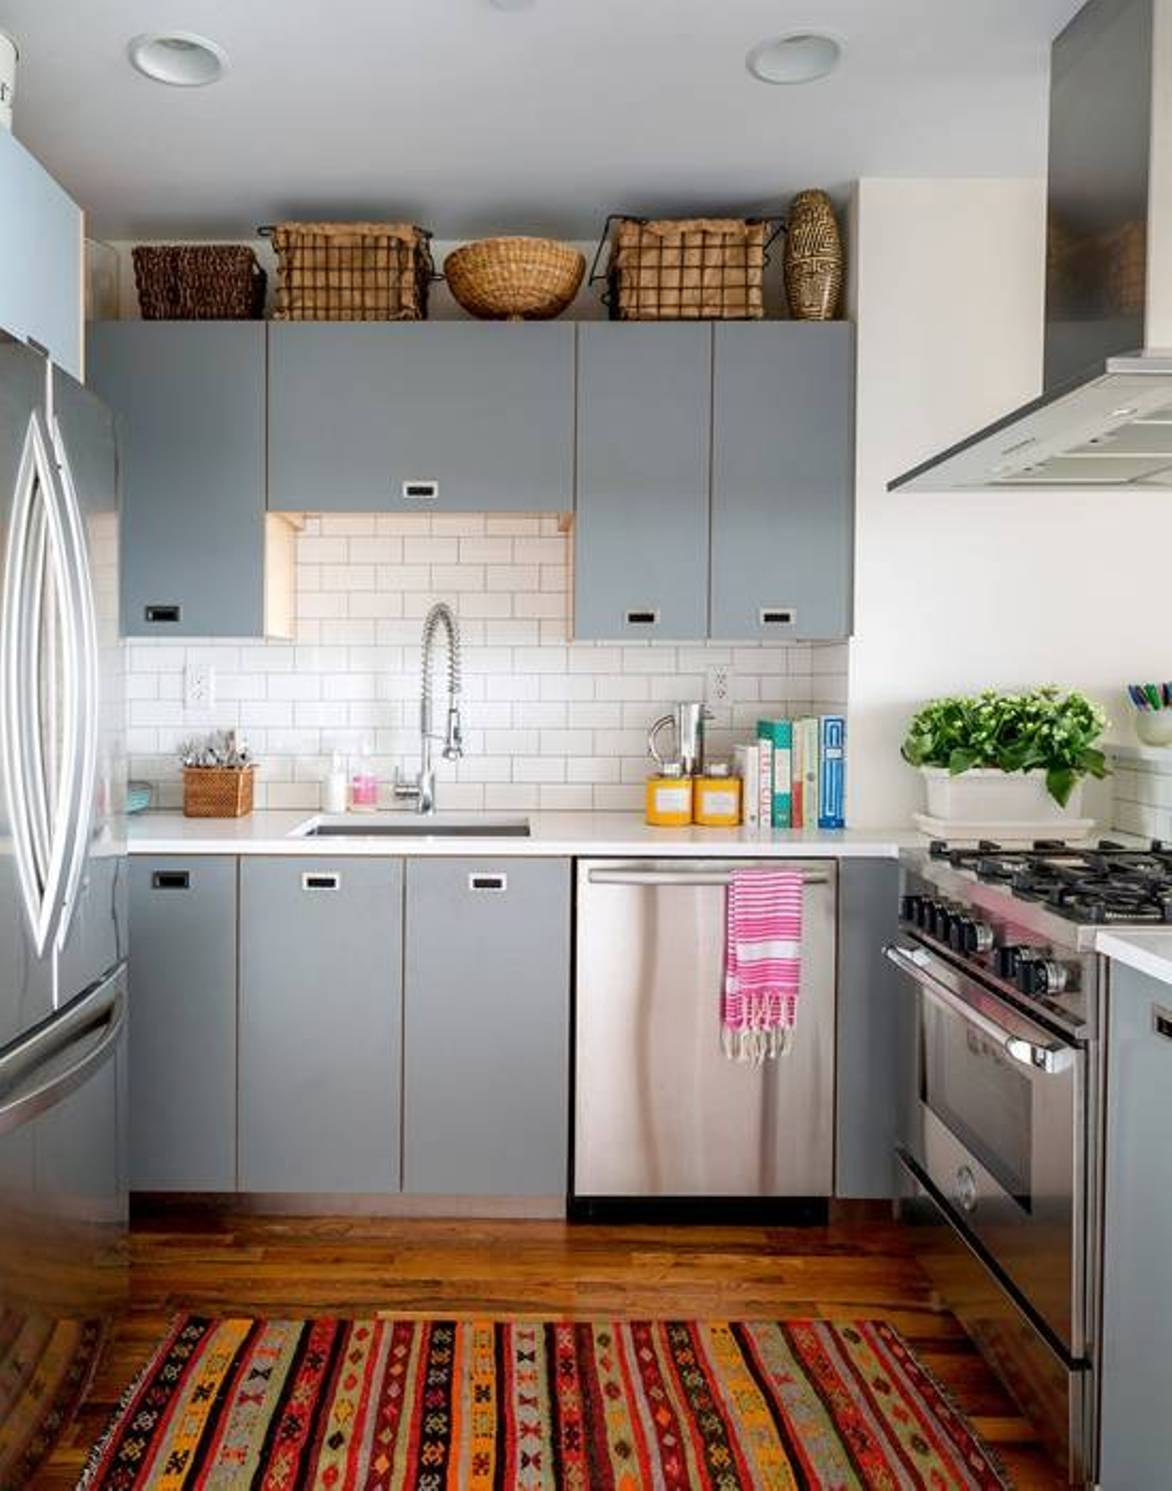 Beautiful abodes small kitchen loads of character for Great small kitchens